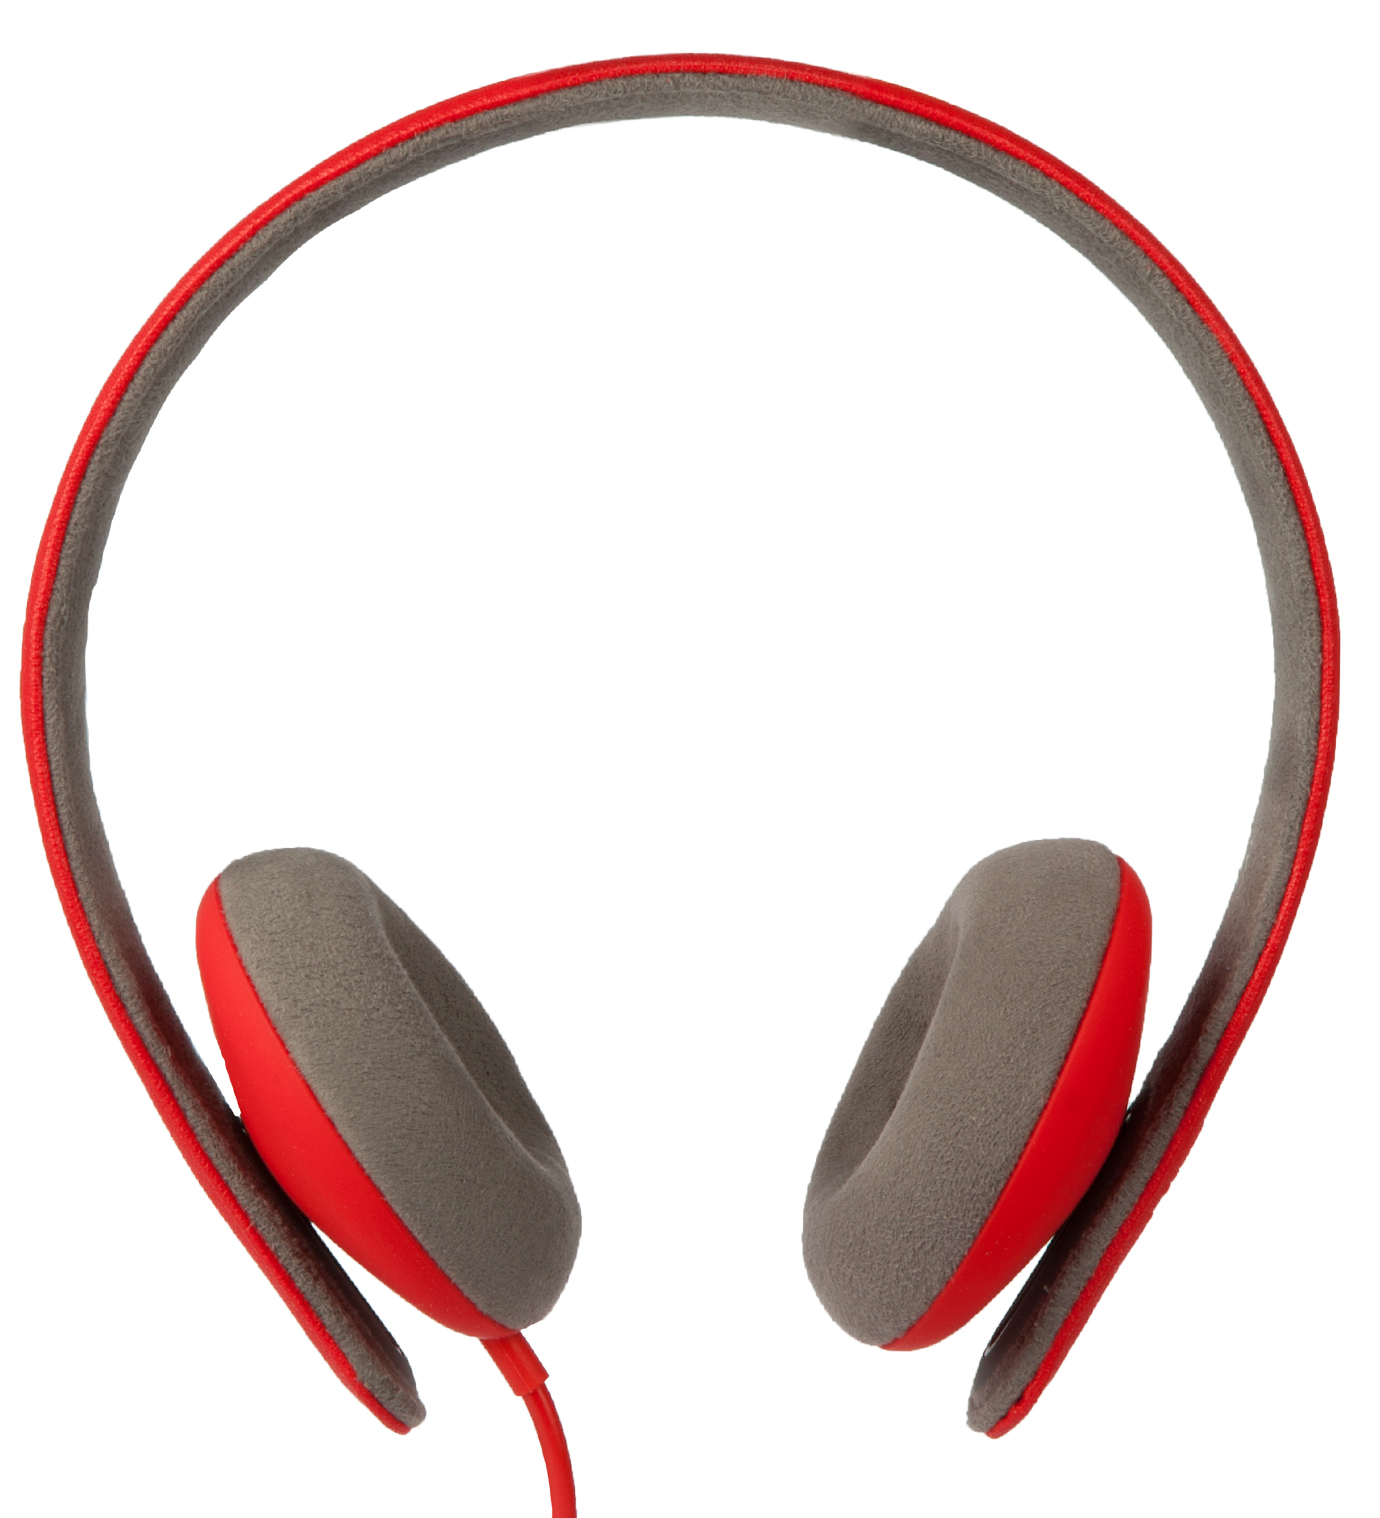 Incase Hot Red/Primer Reflex Coated Canvas Headphones